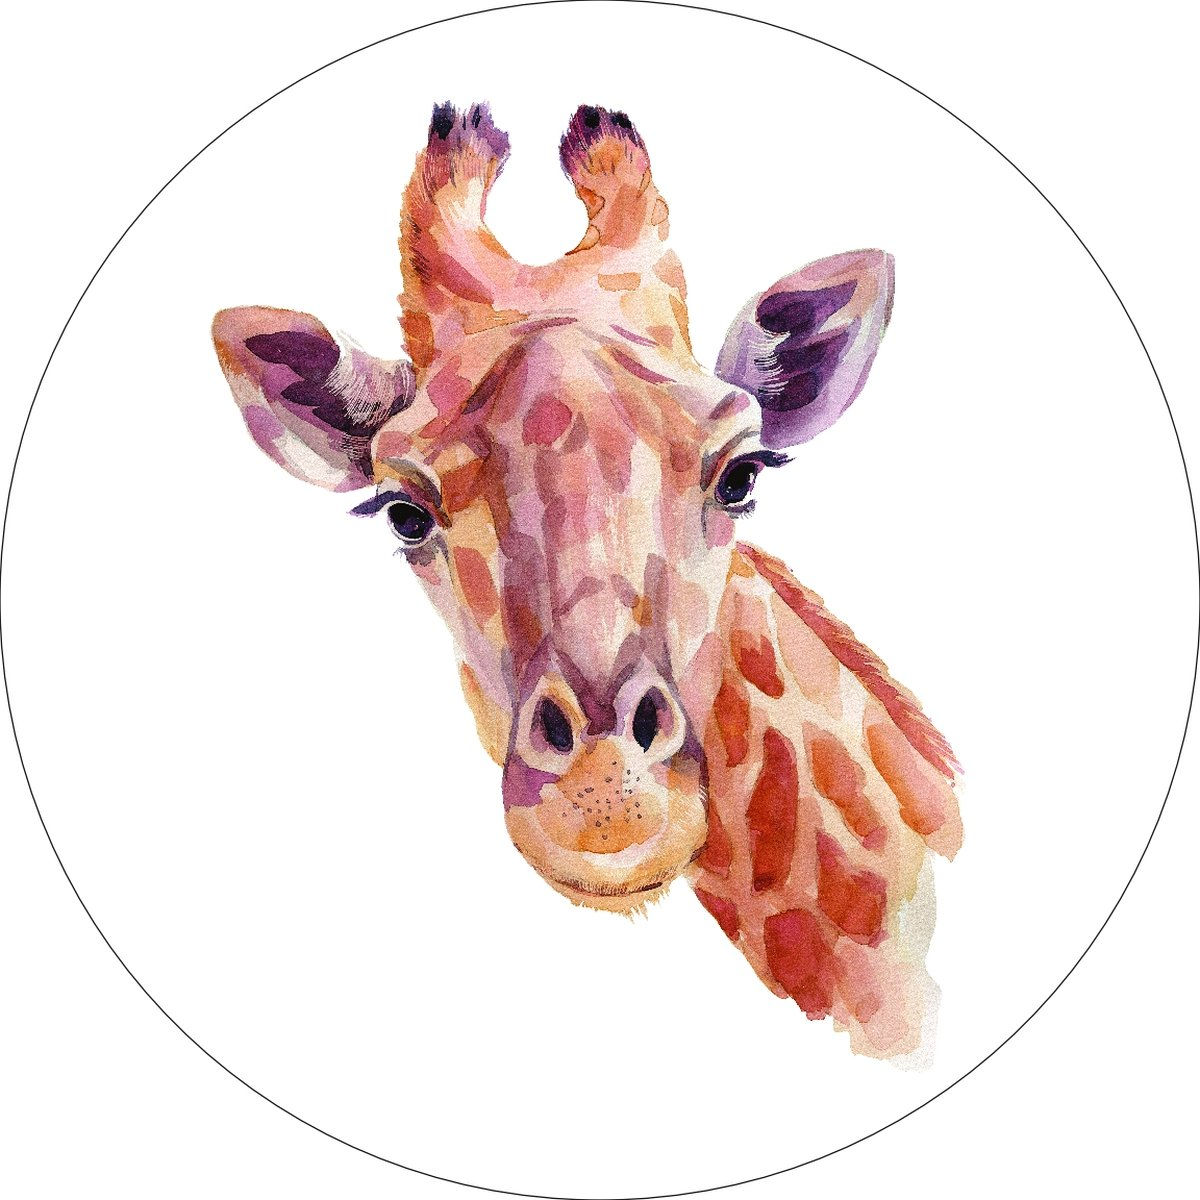 Giraffe Home Wall Shelf Decor Animal Decorations Watercolor Round Sign - 12 Inch, Plastic